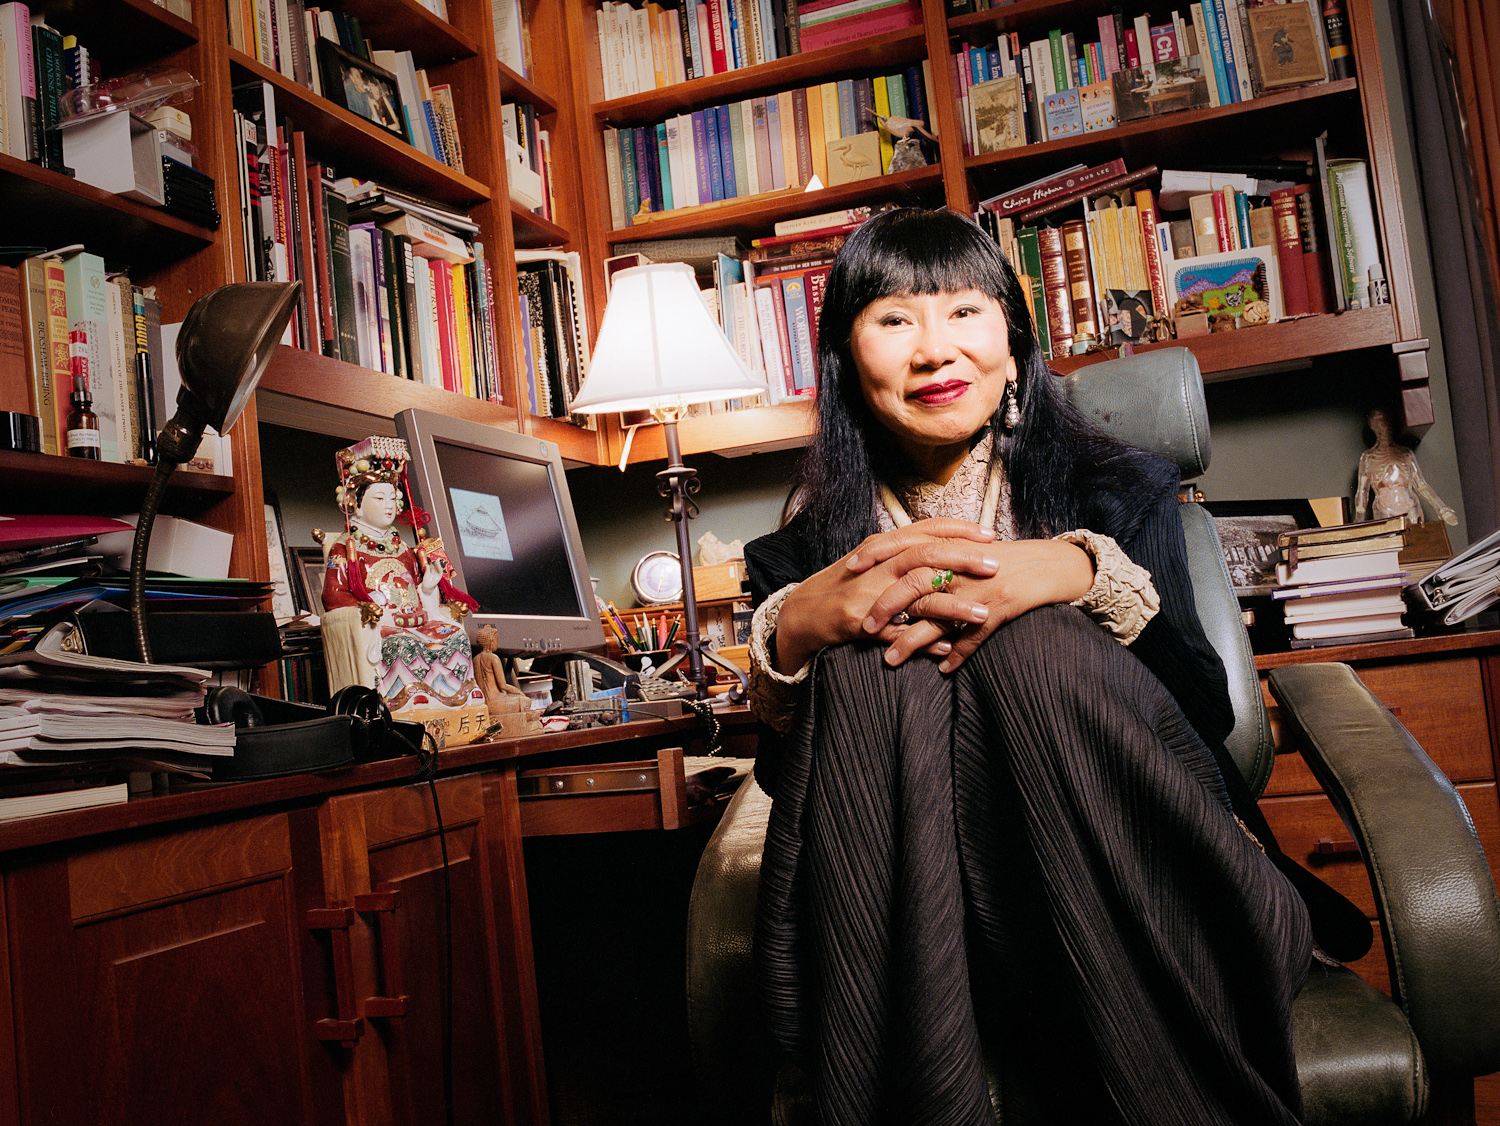 a biography of amy tan and brief analysis of her works Amy tan amy tan was born in 1952, in oakland, california to chinese immigrants john and daisy tan her family eventually settled in santa clara when tan was in her early teens, her father and one of her brothers died of brain tumors within months of each other.